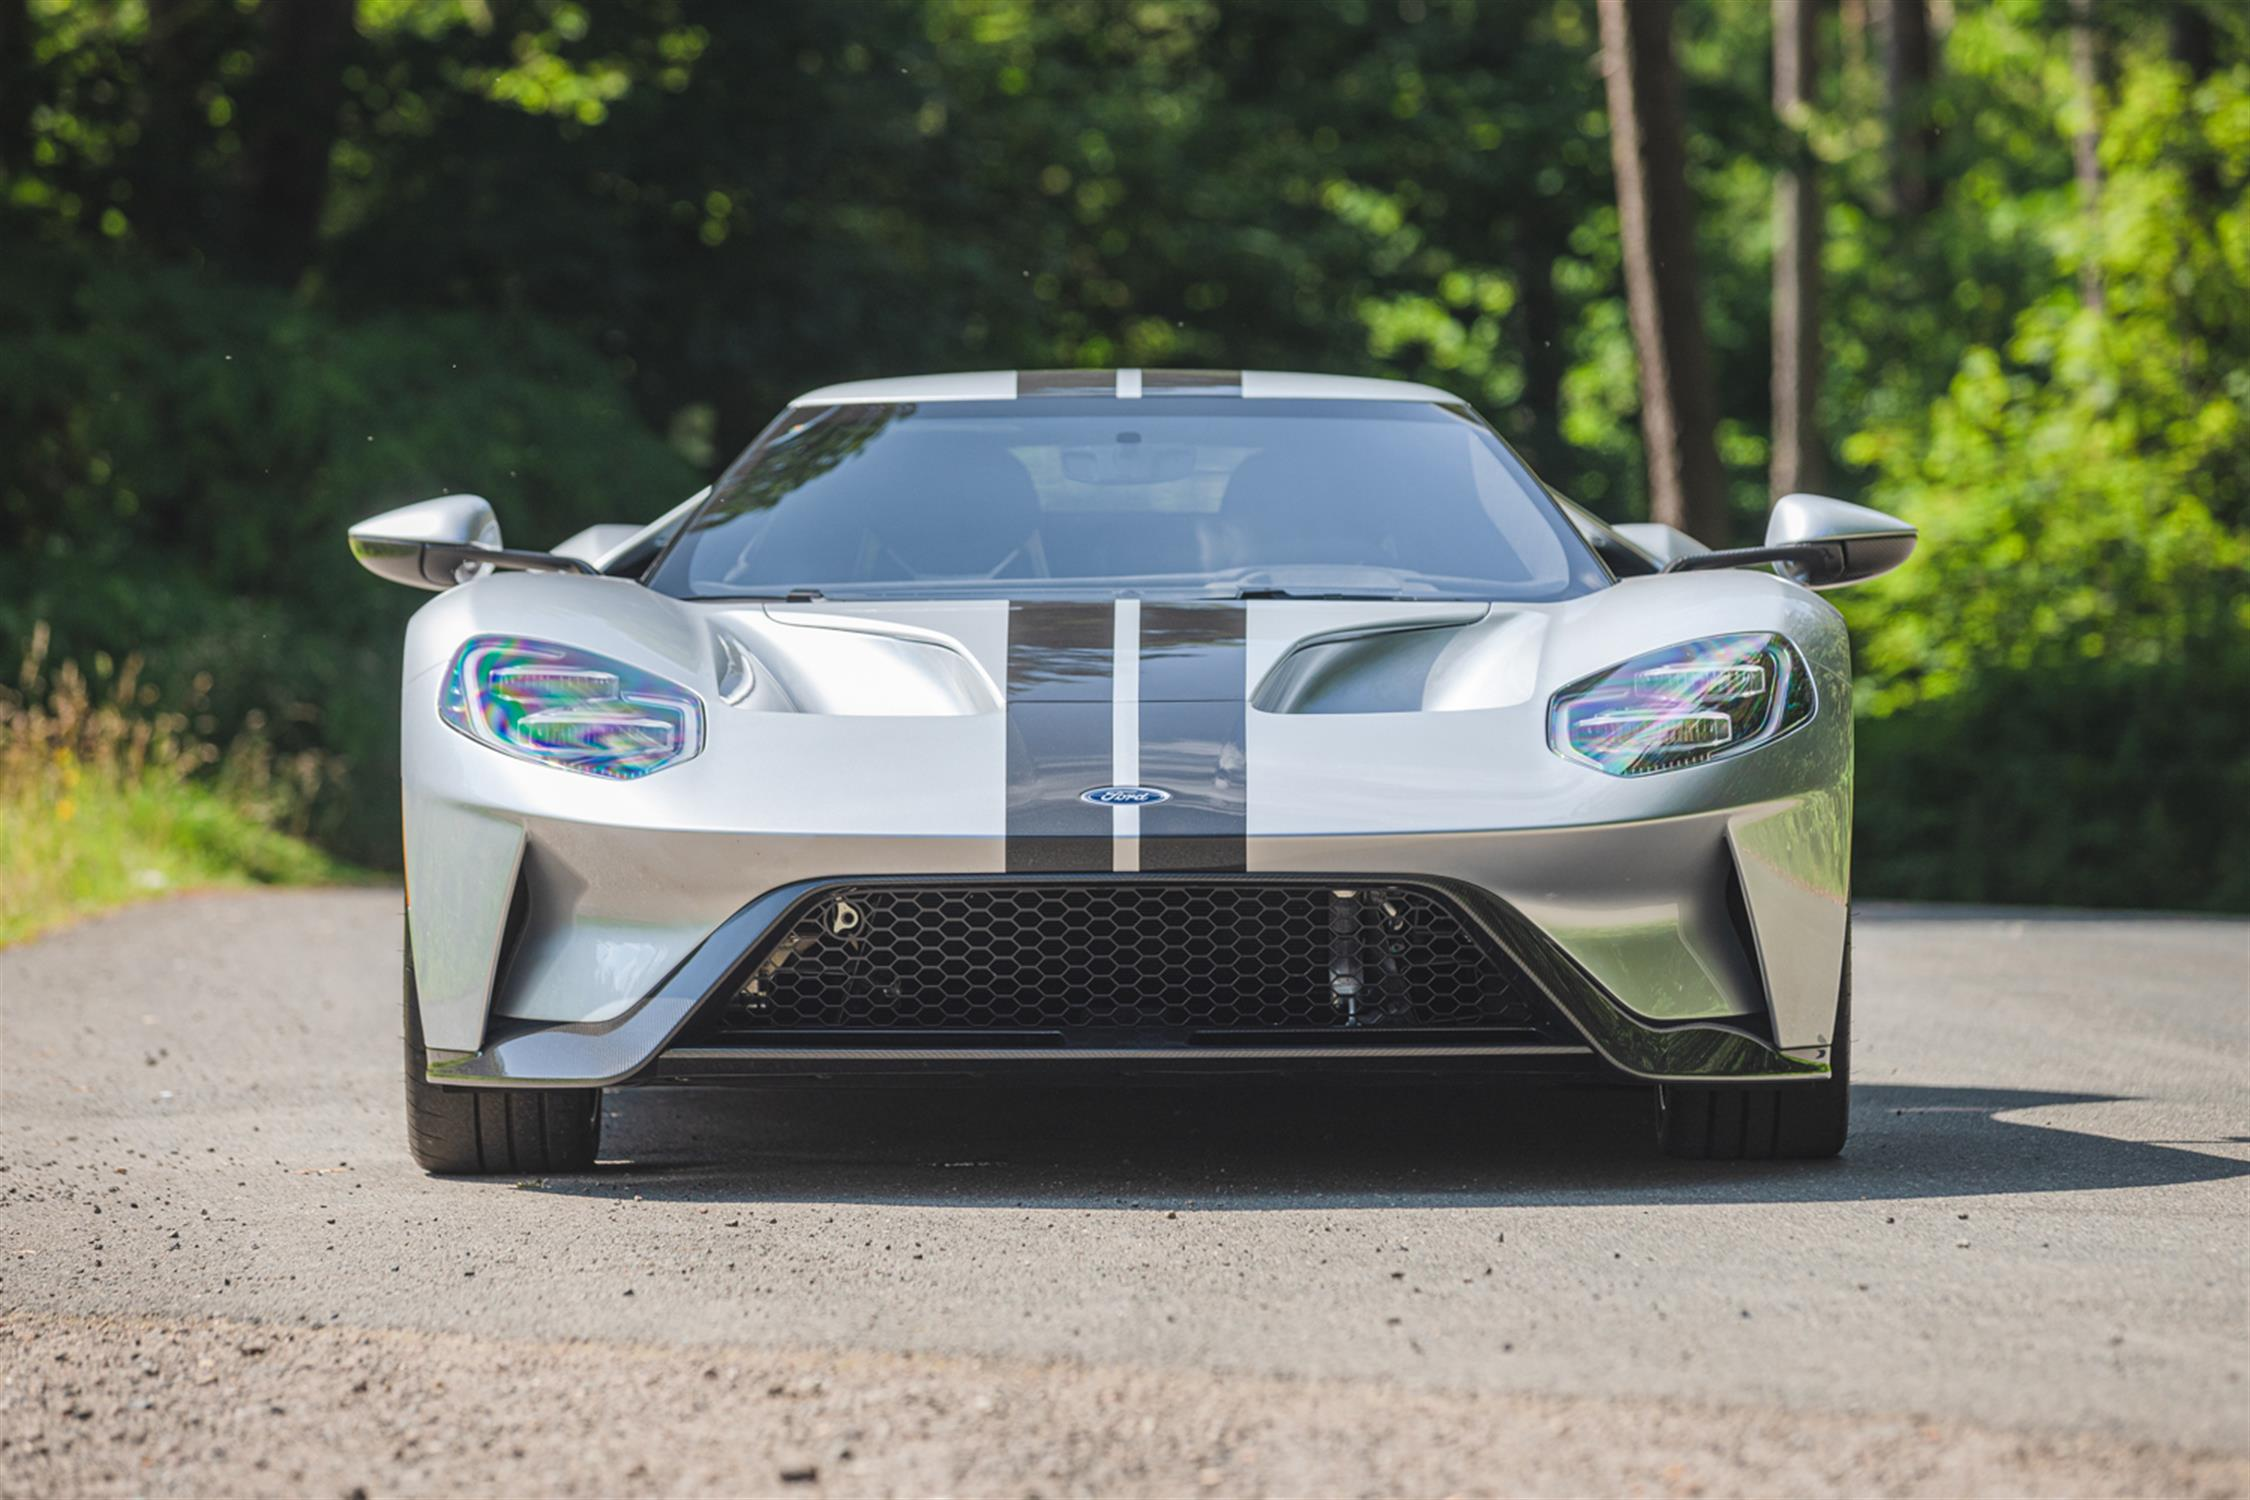 2018 Ford GT - Image 12 of 20